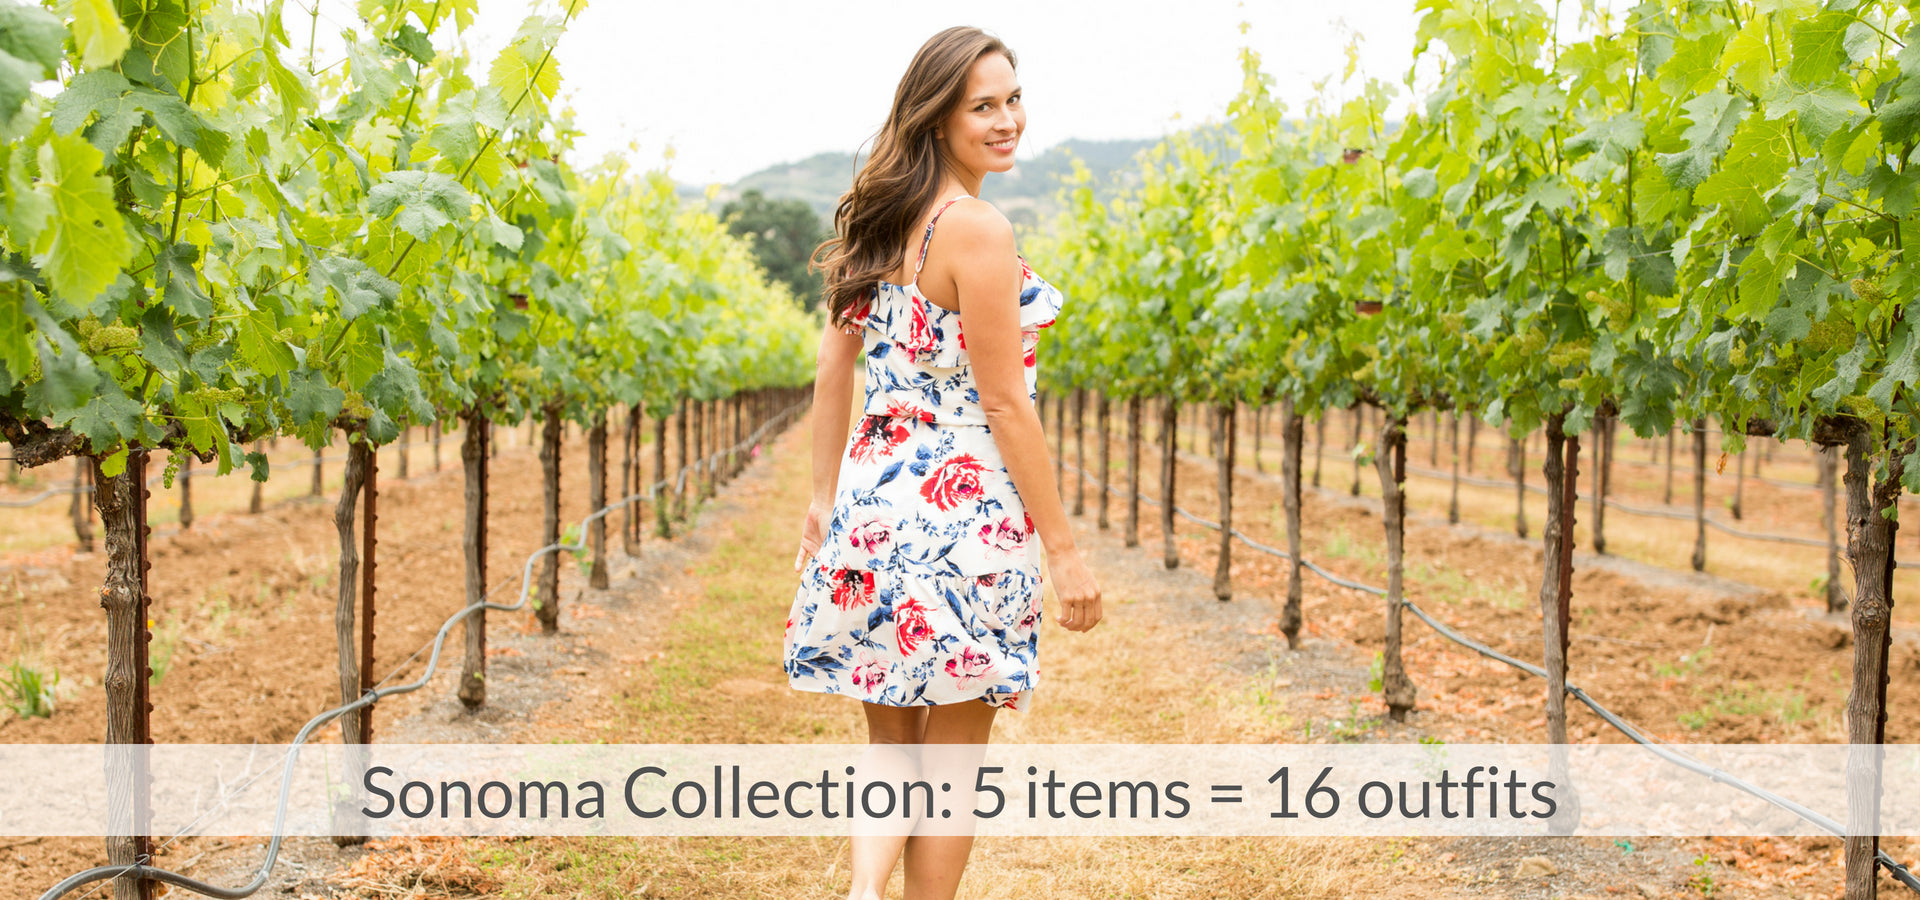 Sonoma Collection: 5 items = 16 outfits